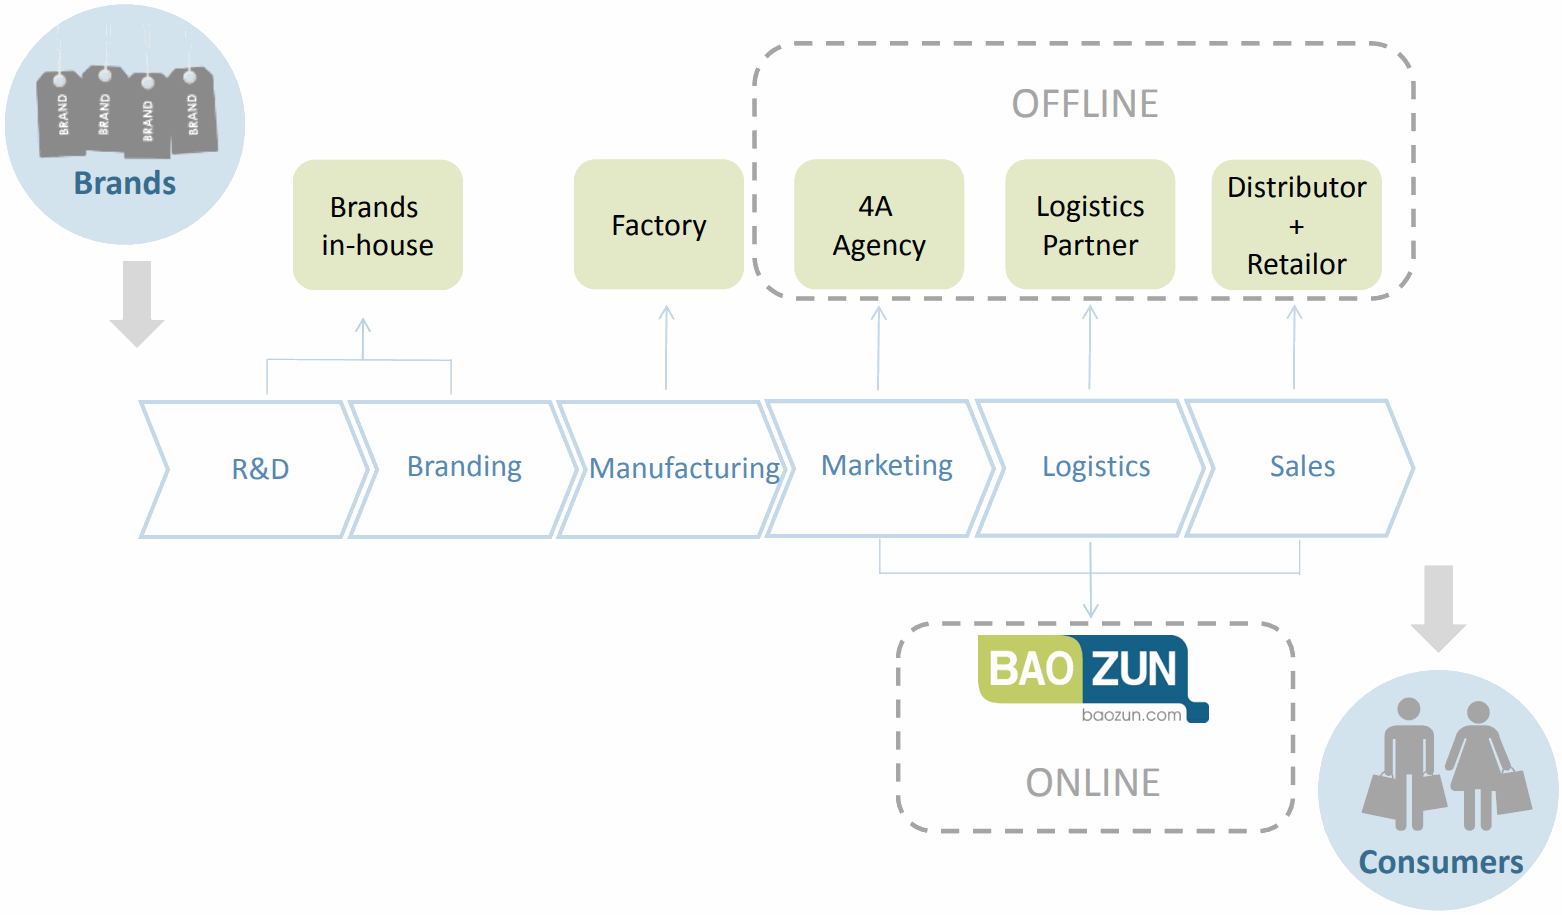 Baozun-Marketing-Logistics-Sales